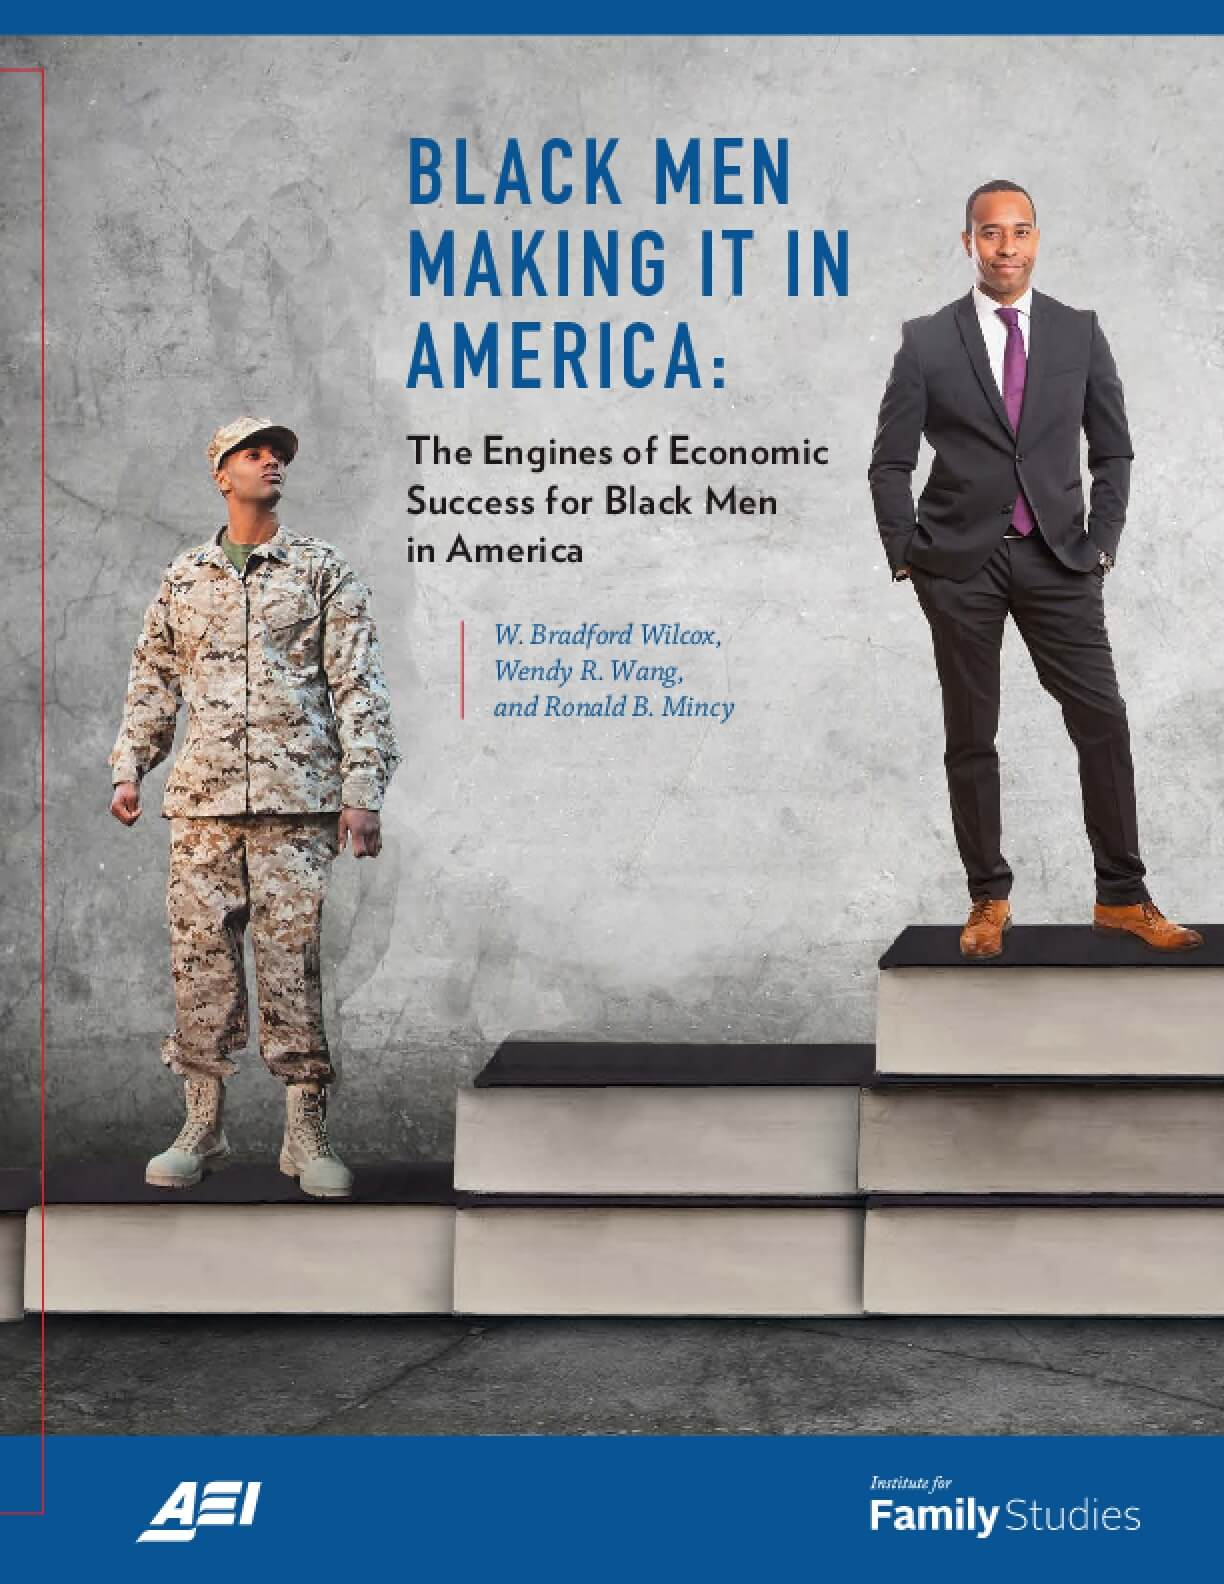 Black Men Making it in America: The Engines of Economic Success for Black Men in America